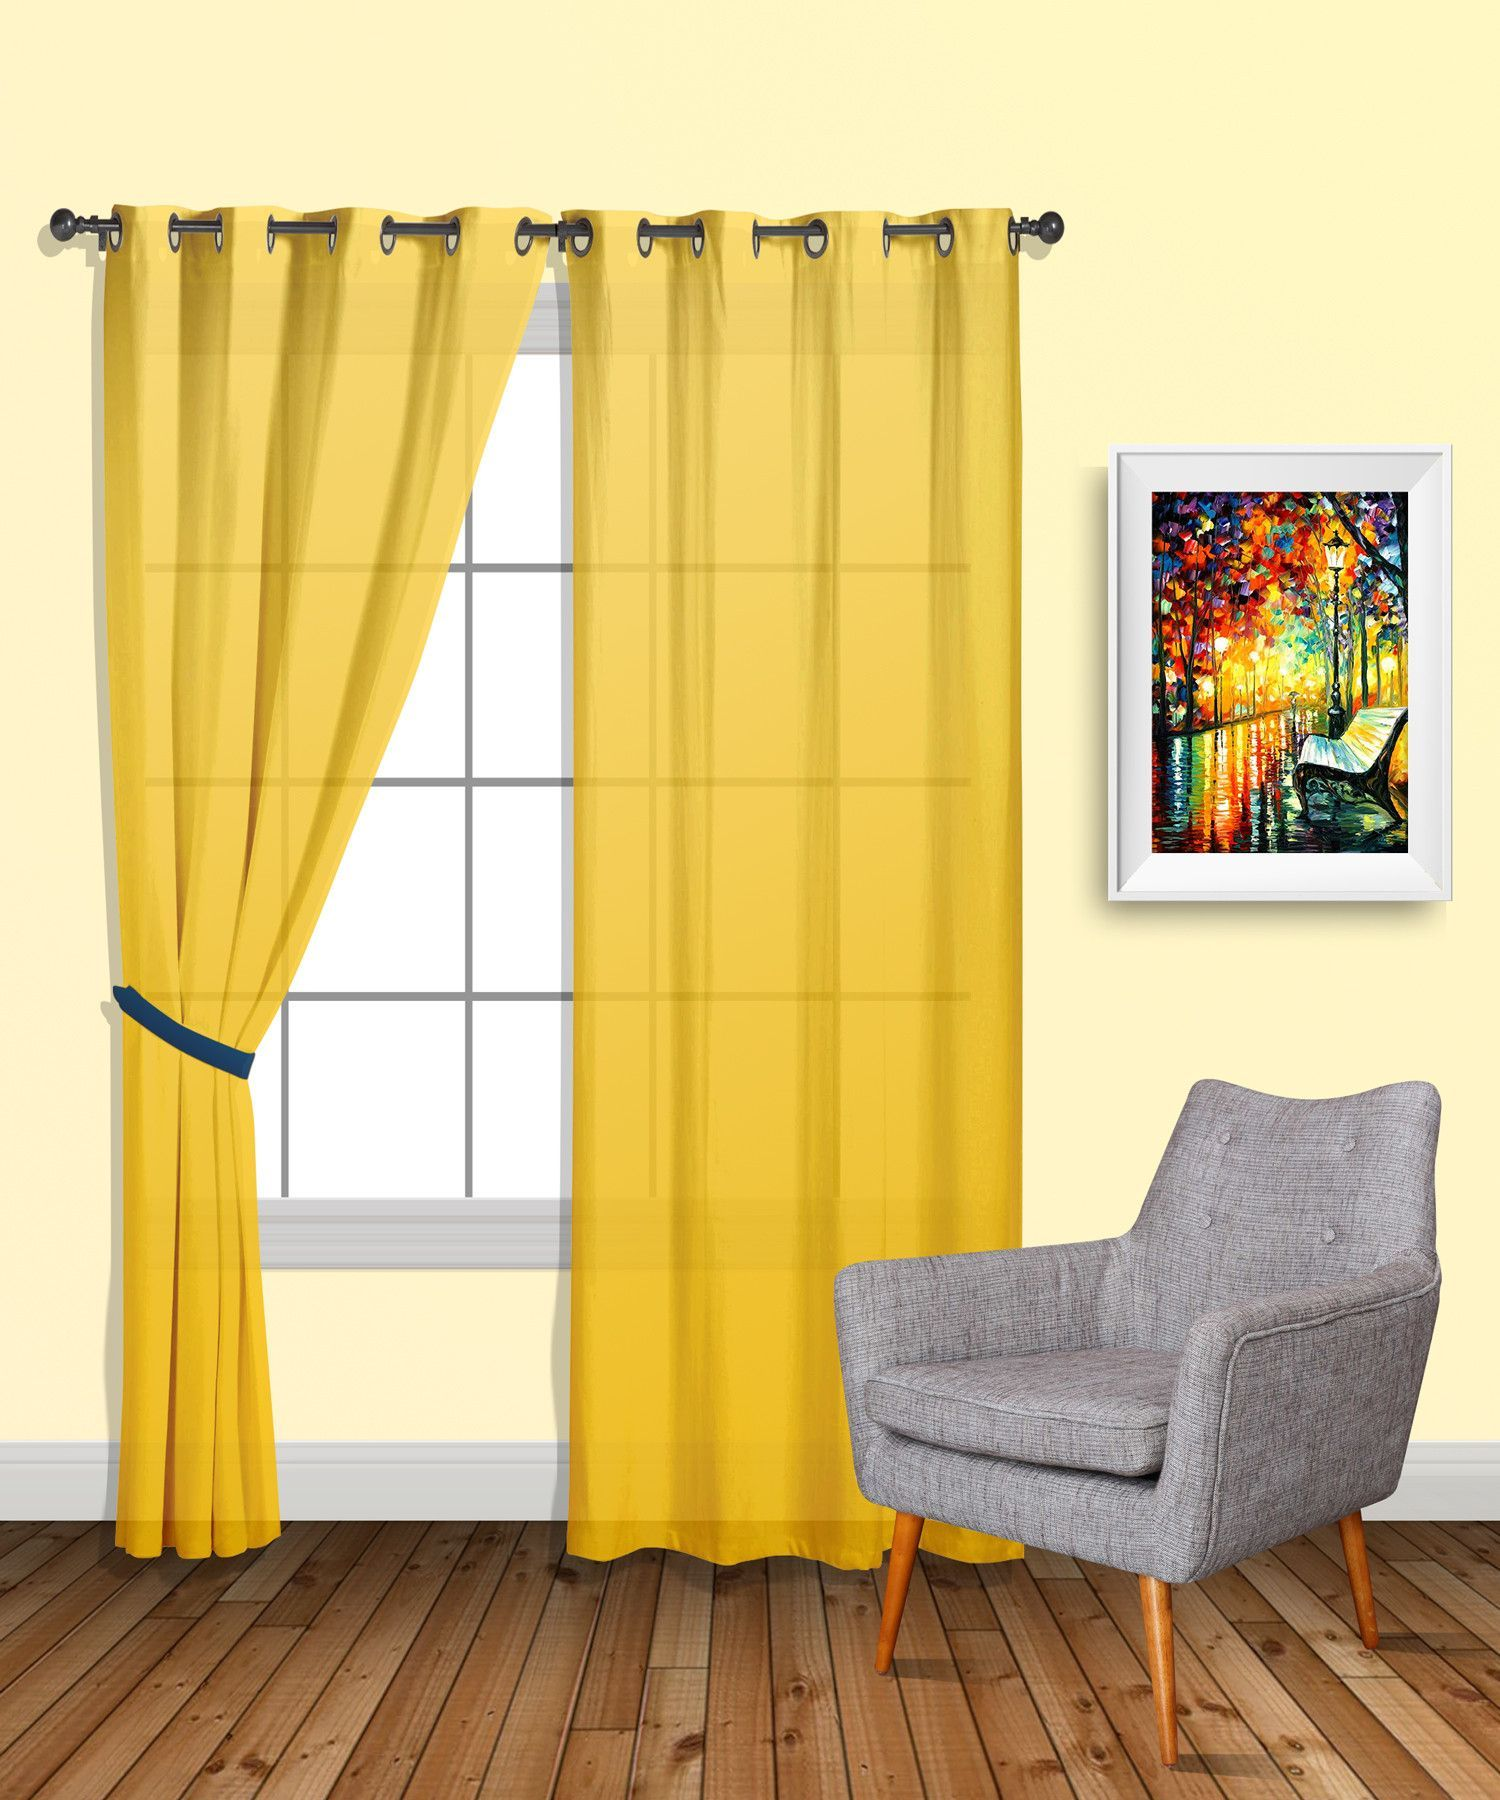 Bed against window with curtains  warm home designs  pair of yellow sheer window curtains and scarves